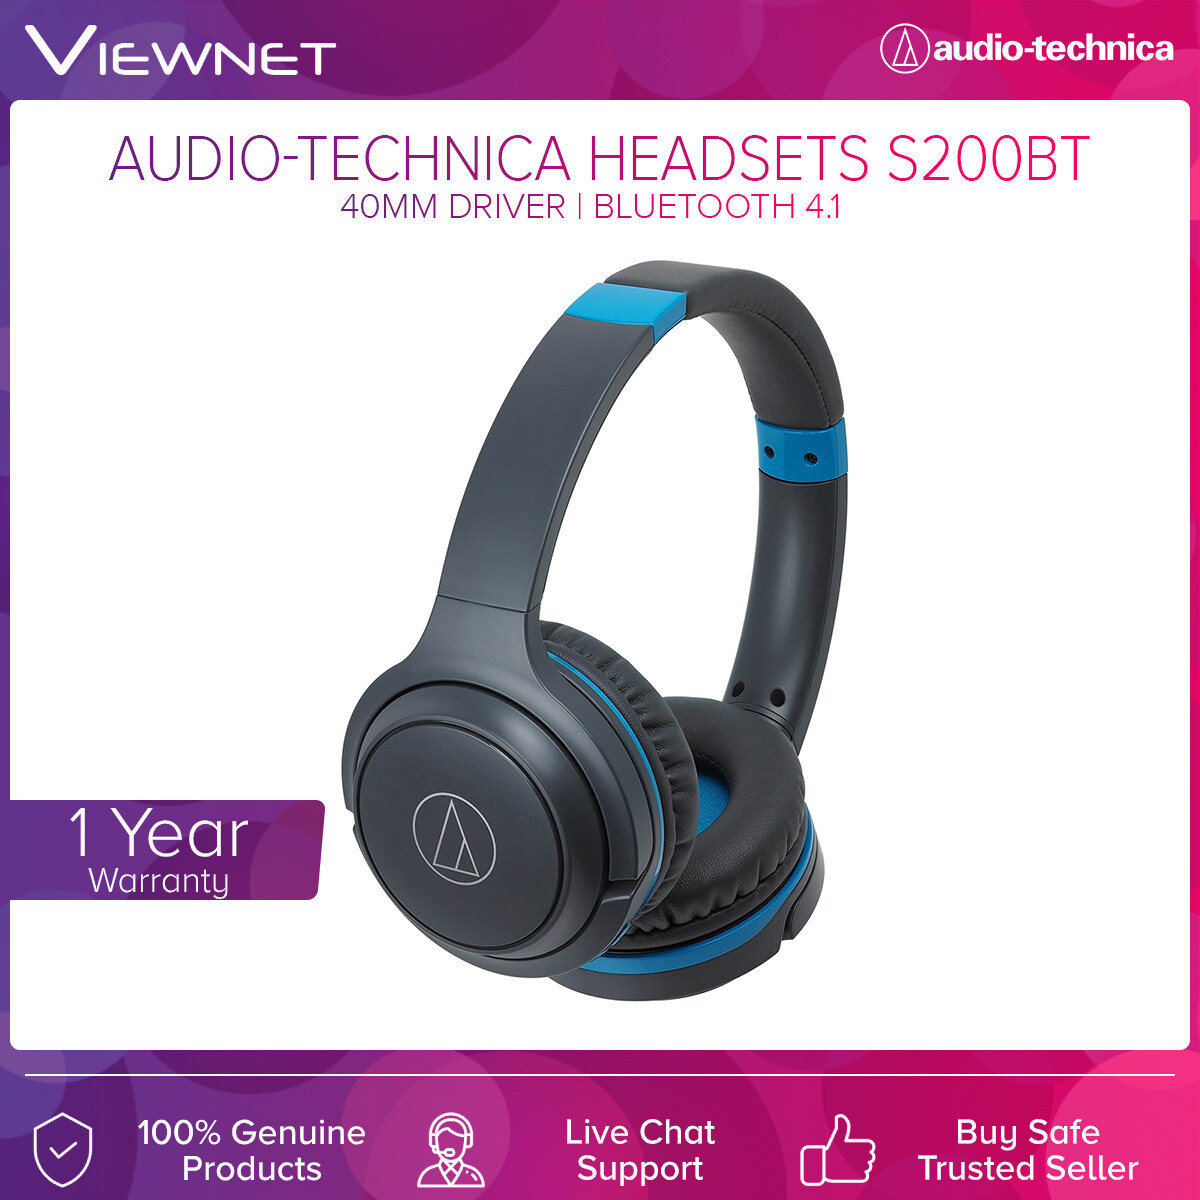 Audio-Technica Wireless Headsets ATH-S200BT with 40mm Driver, Bluetooth 4.1, 5 - 32,000 Hz Frequency, 40 Hours Battery Life